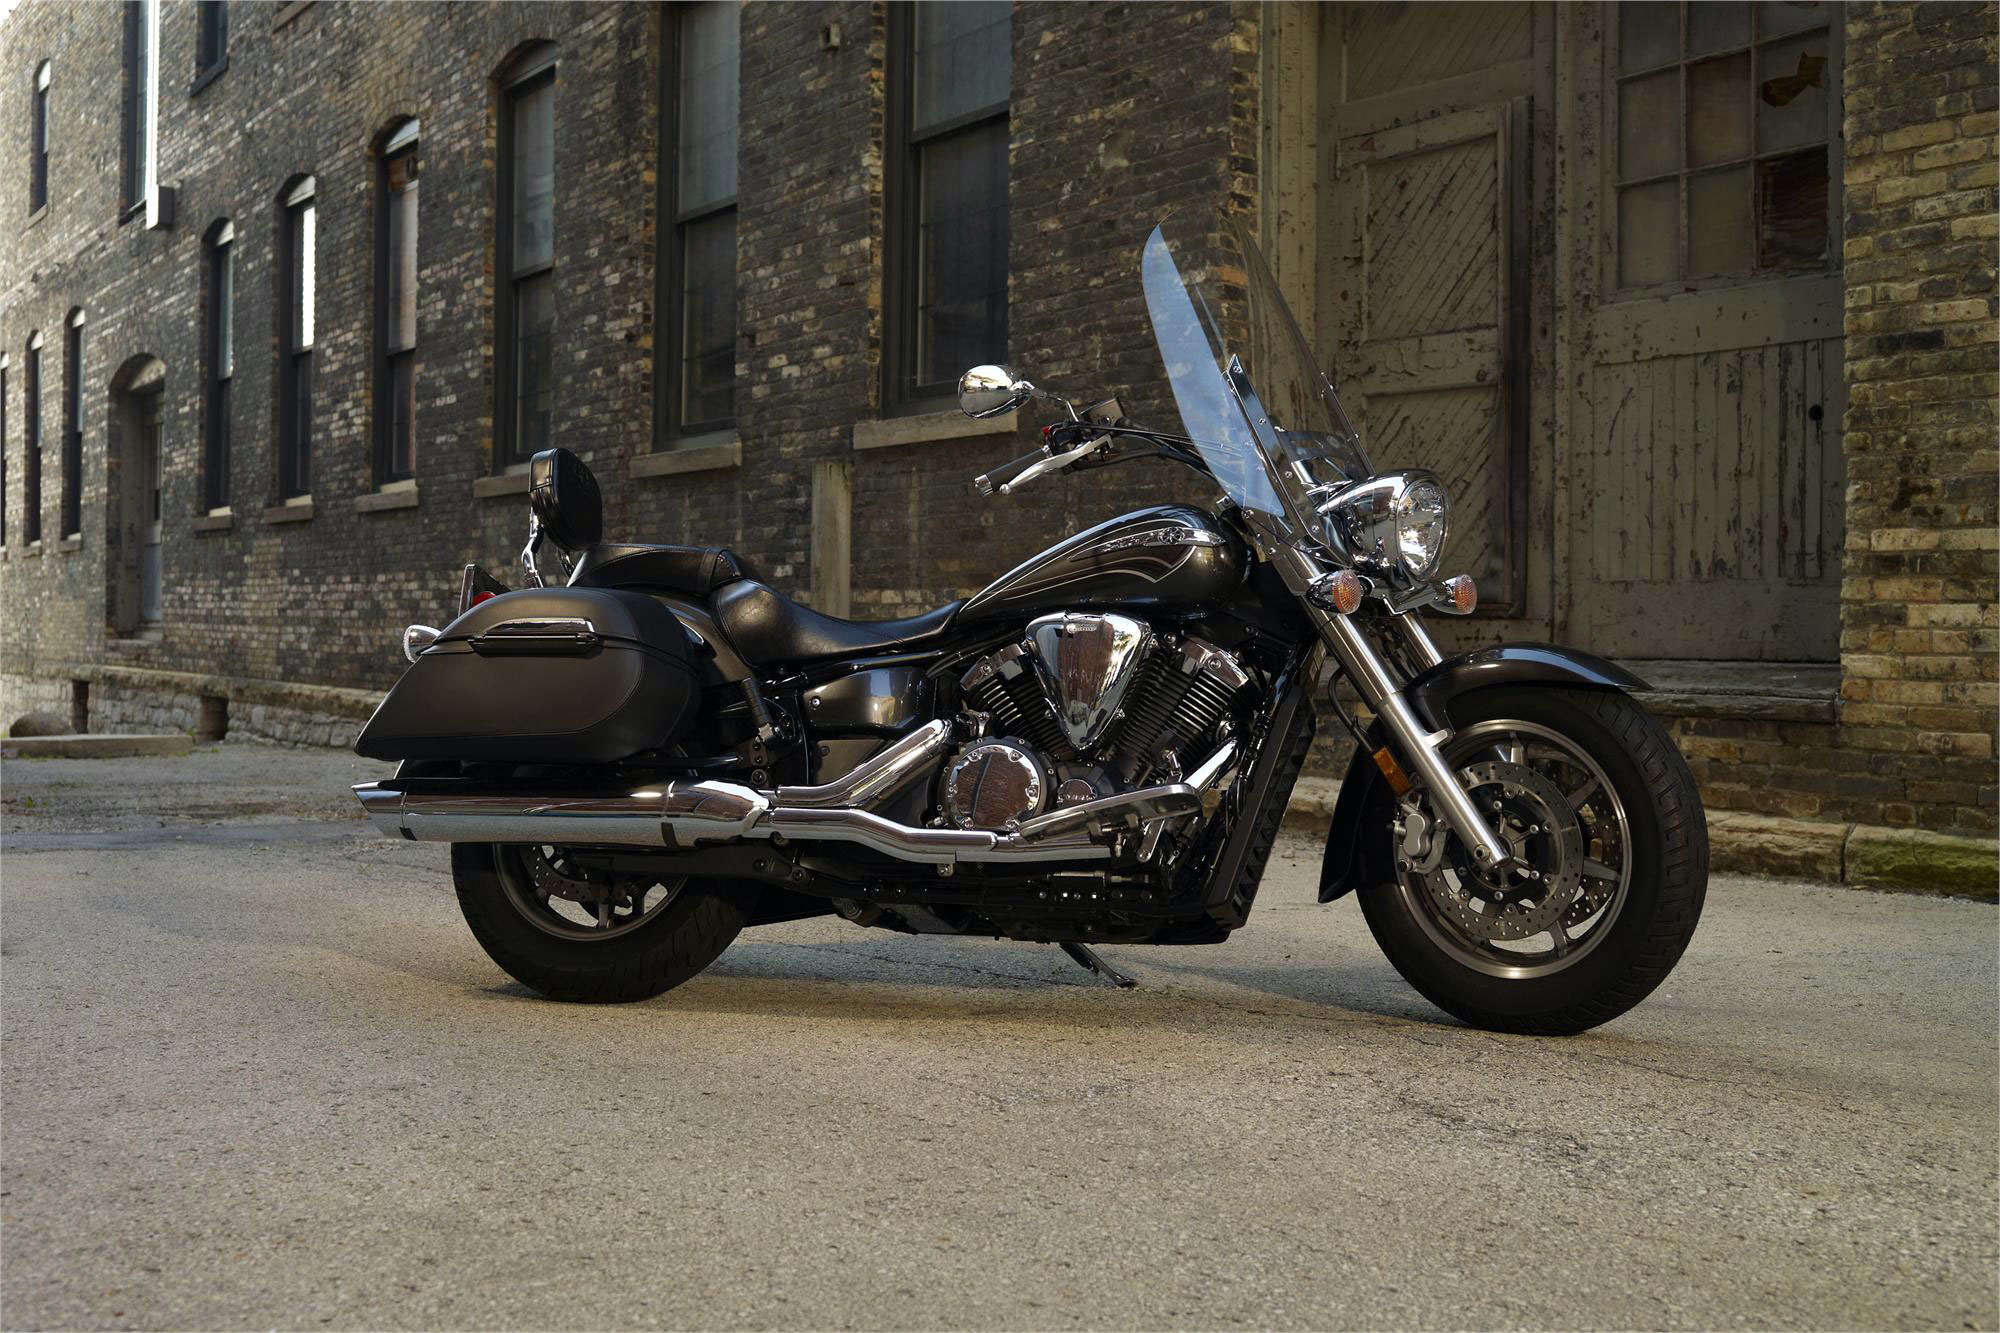 2012 Yamaha V-Star 1300 Tourer Review